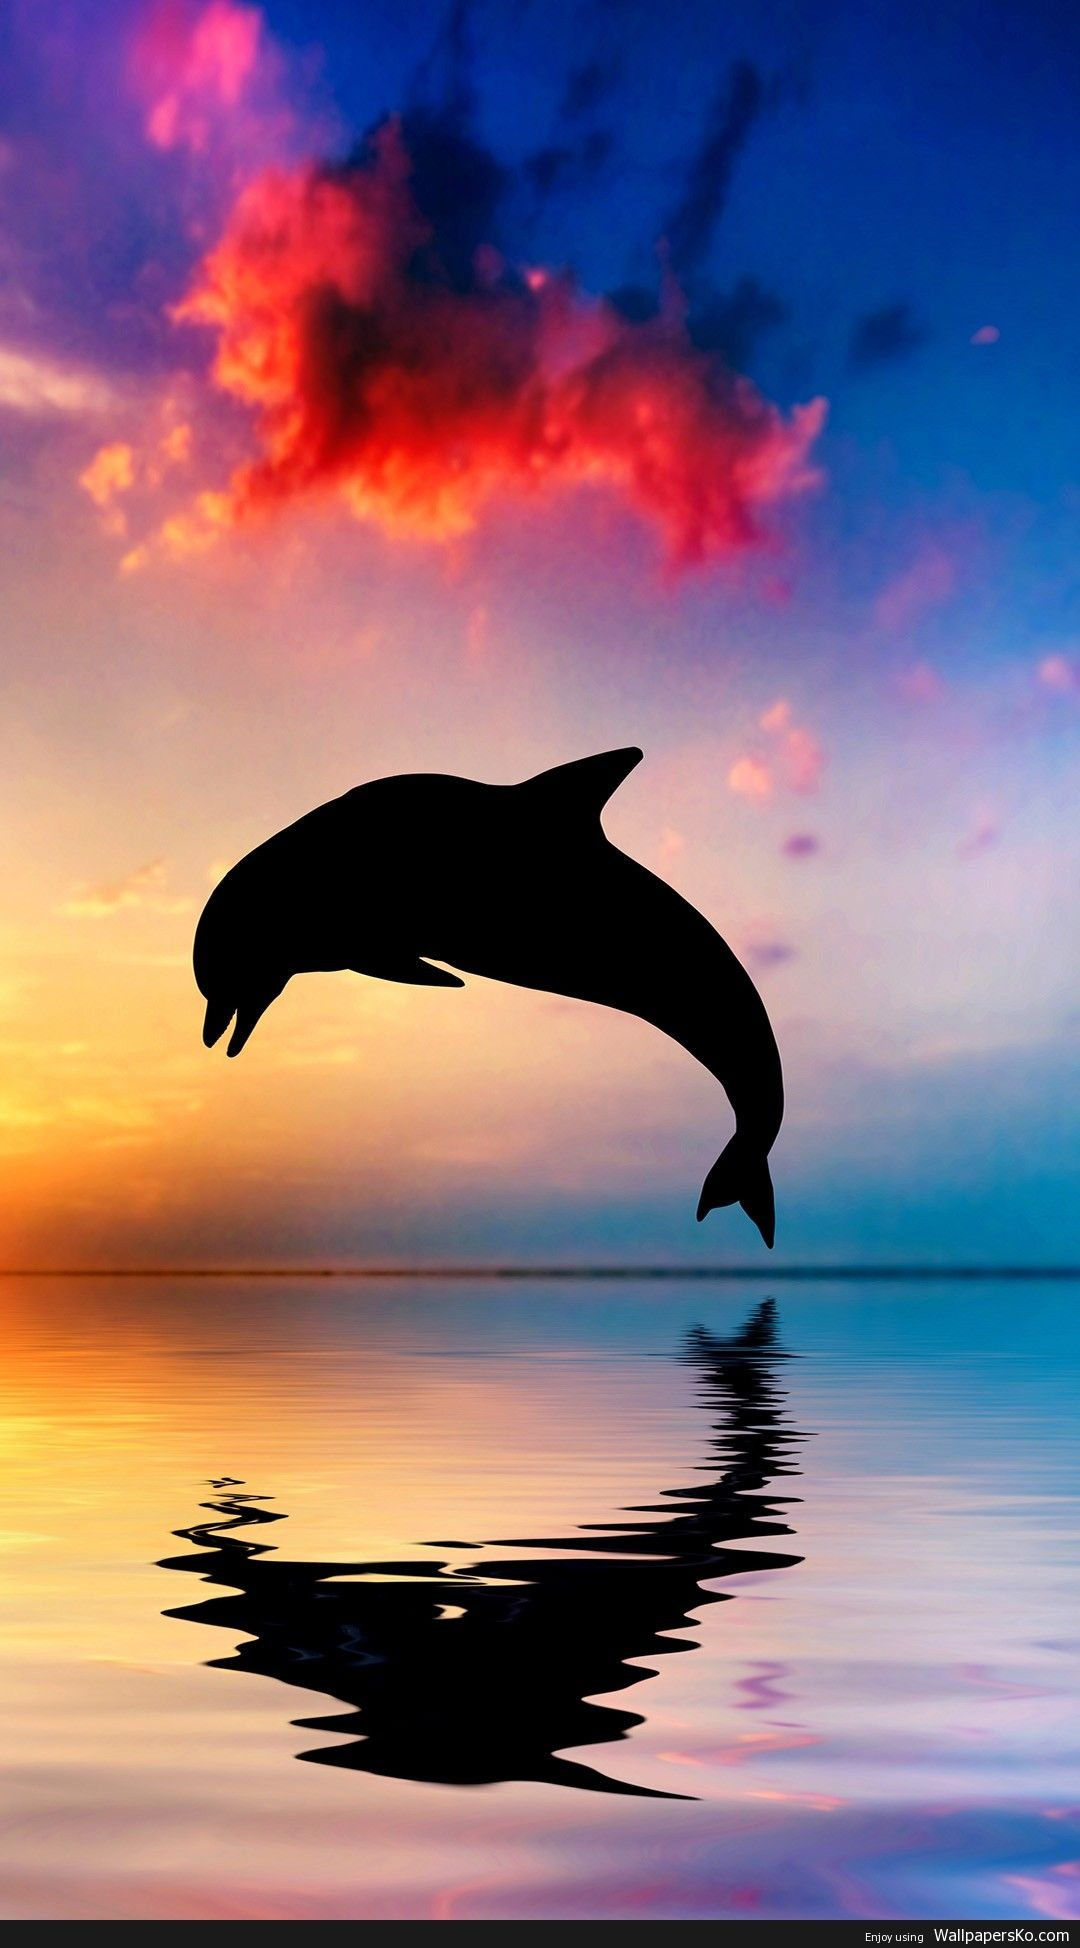 Dolphin Wallpaper For Iphone Http Wallpapersko Com Dolphin